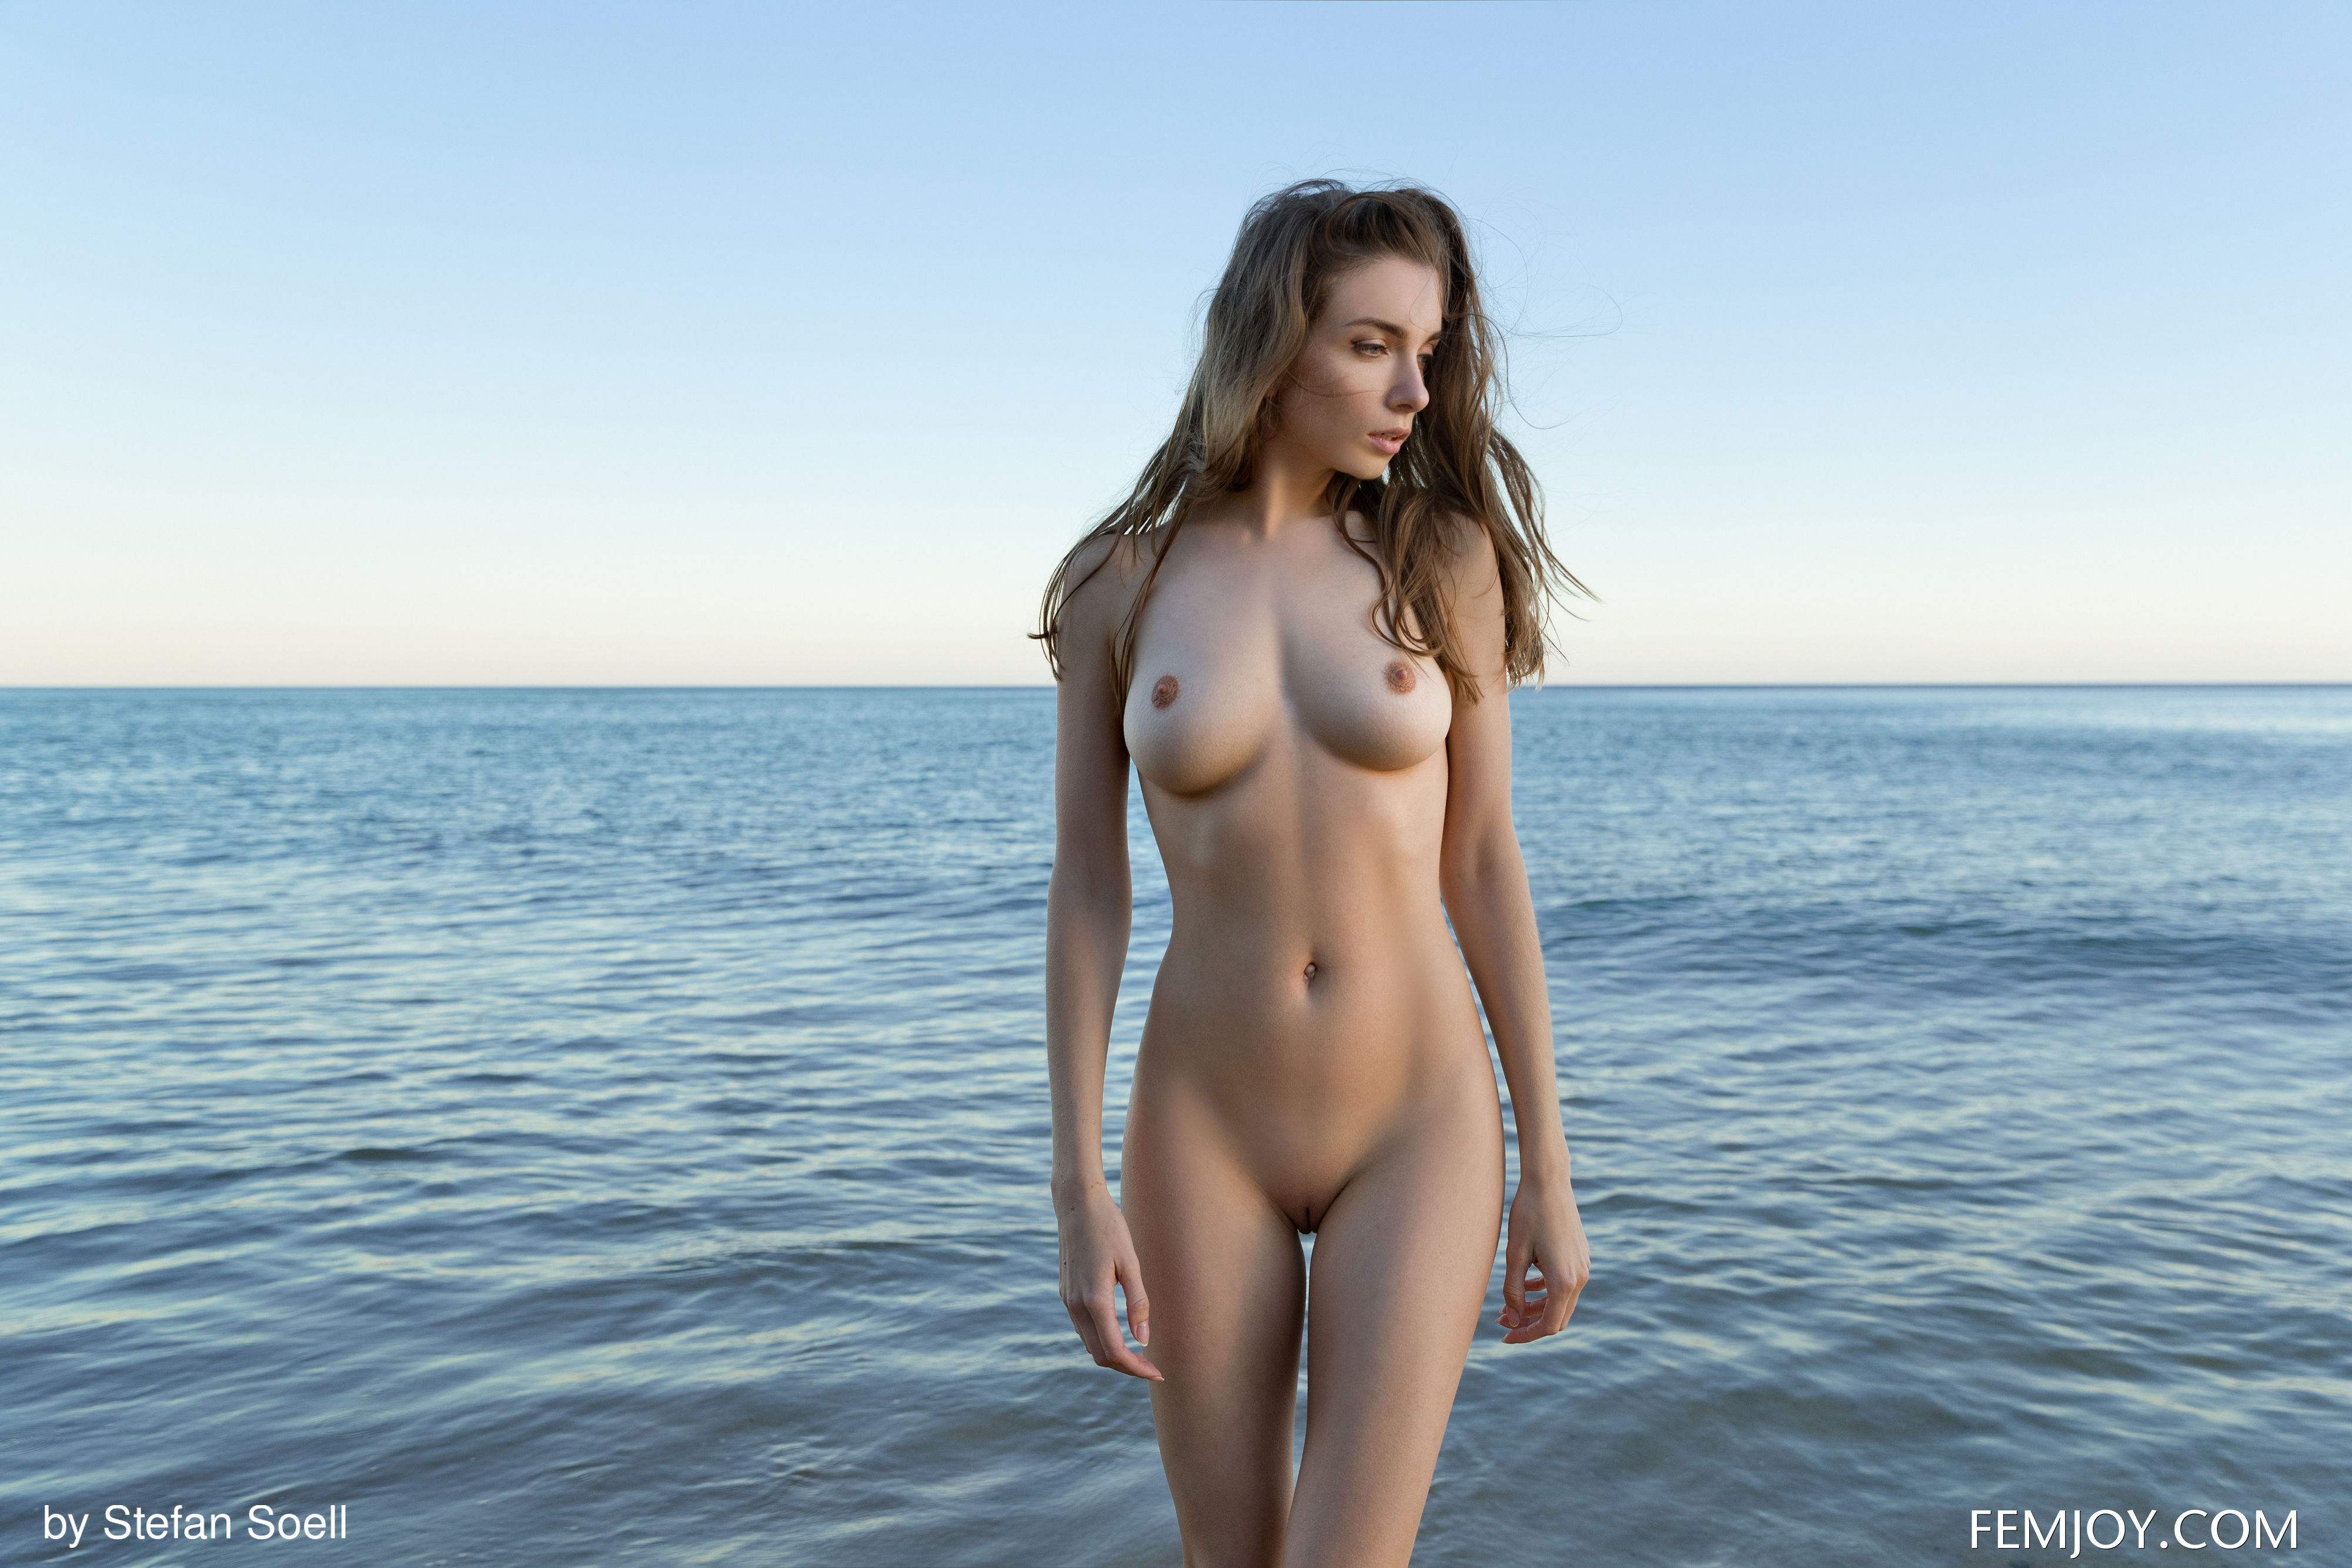 Female standing nude thigh gap